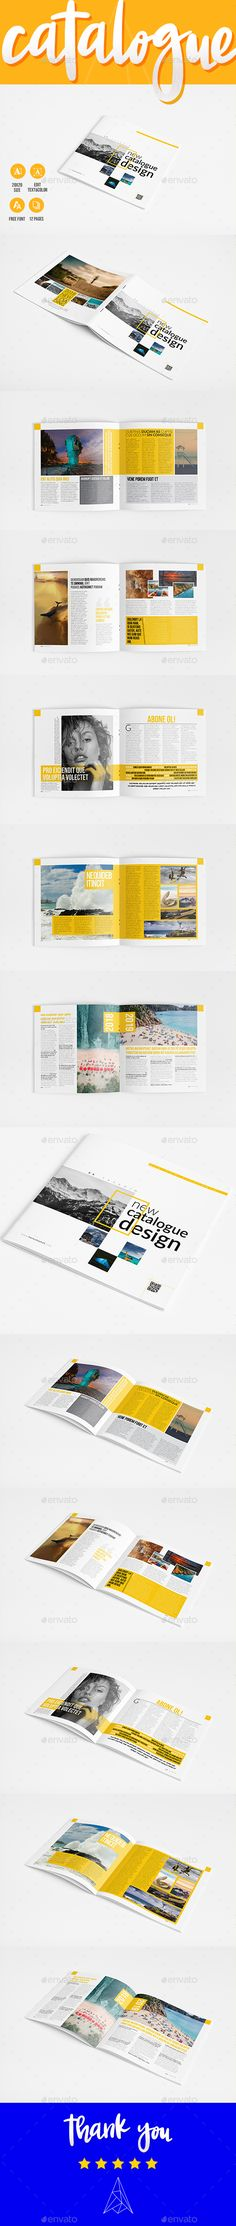 New #Catalogue #Template 12 Pages - Catalogs #Brochures